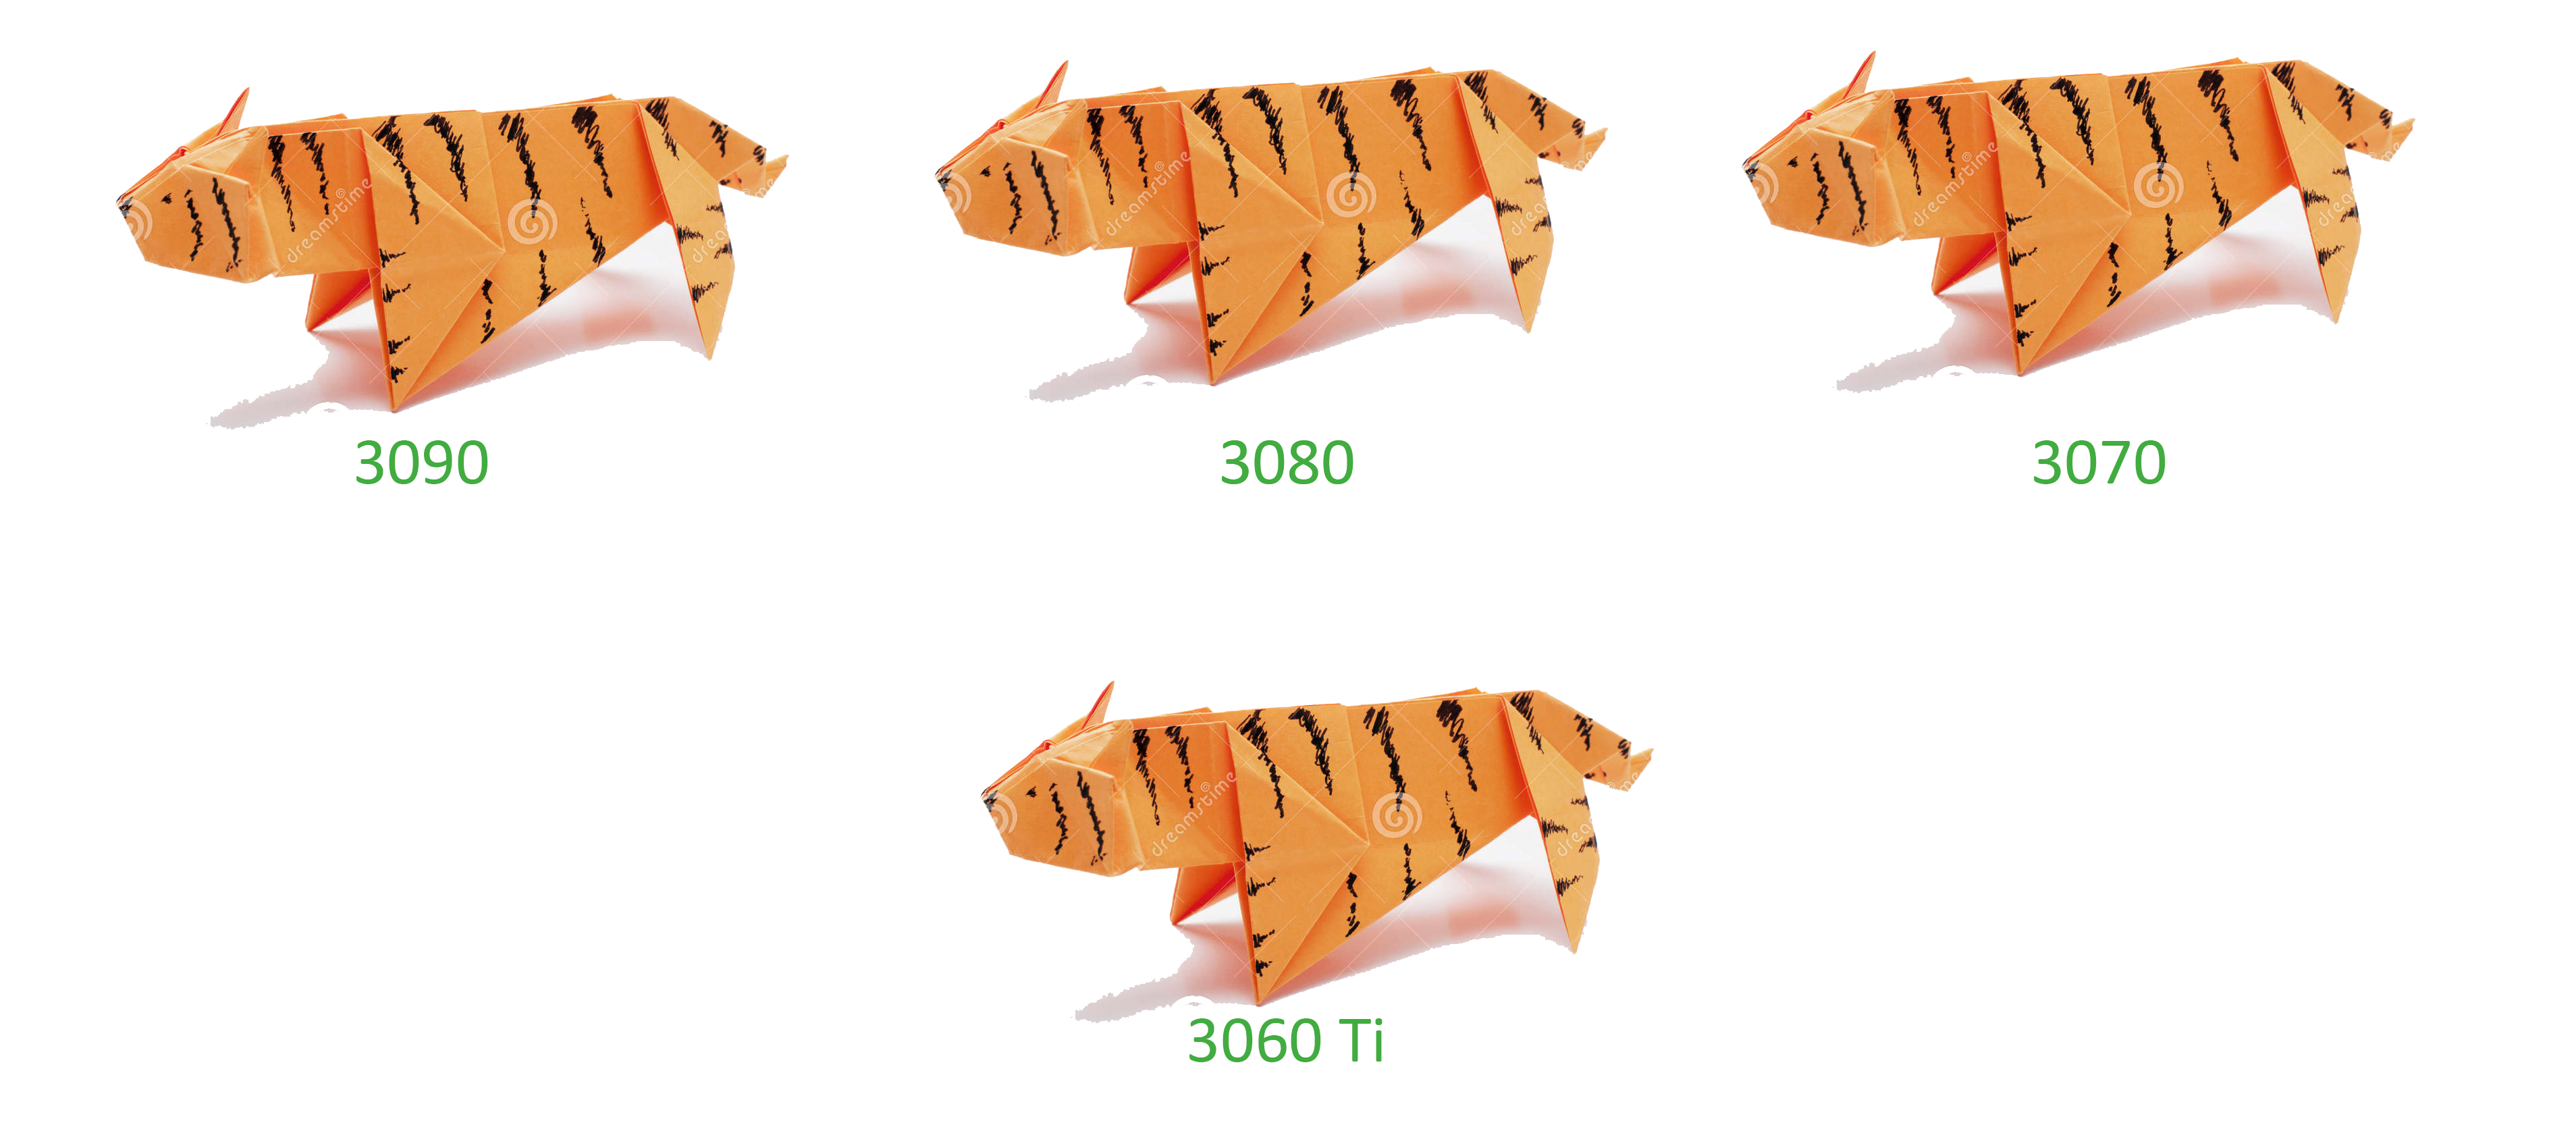 tiger-origami-29126475.png